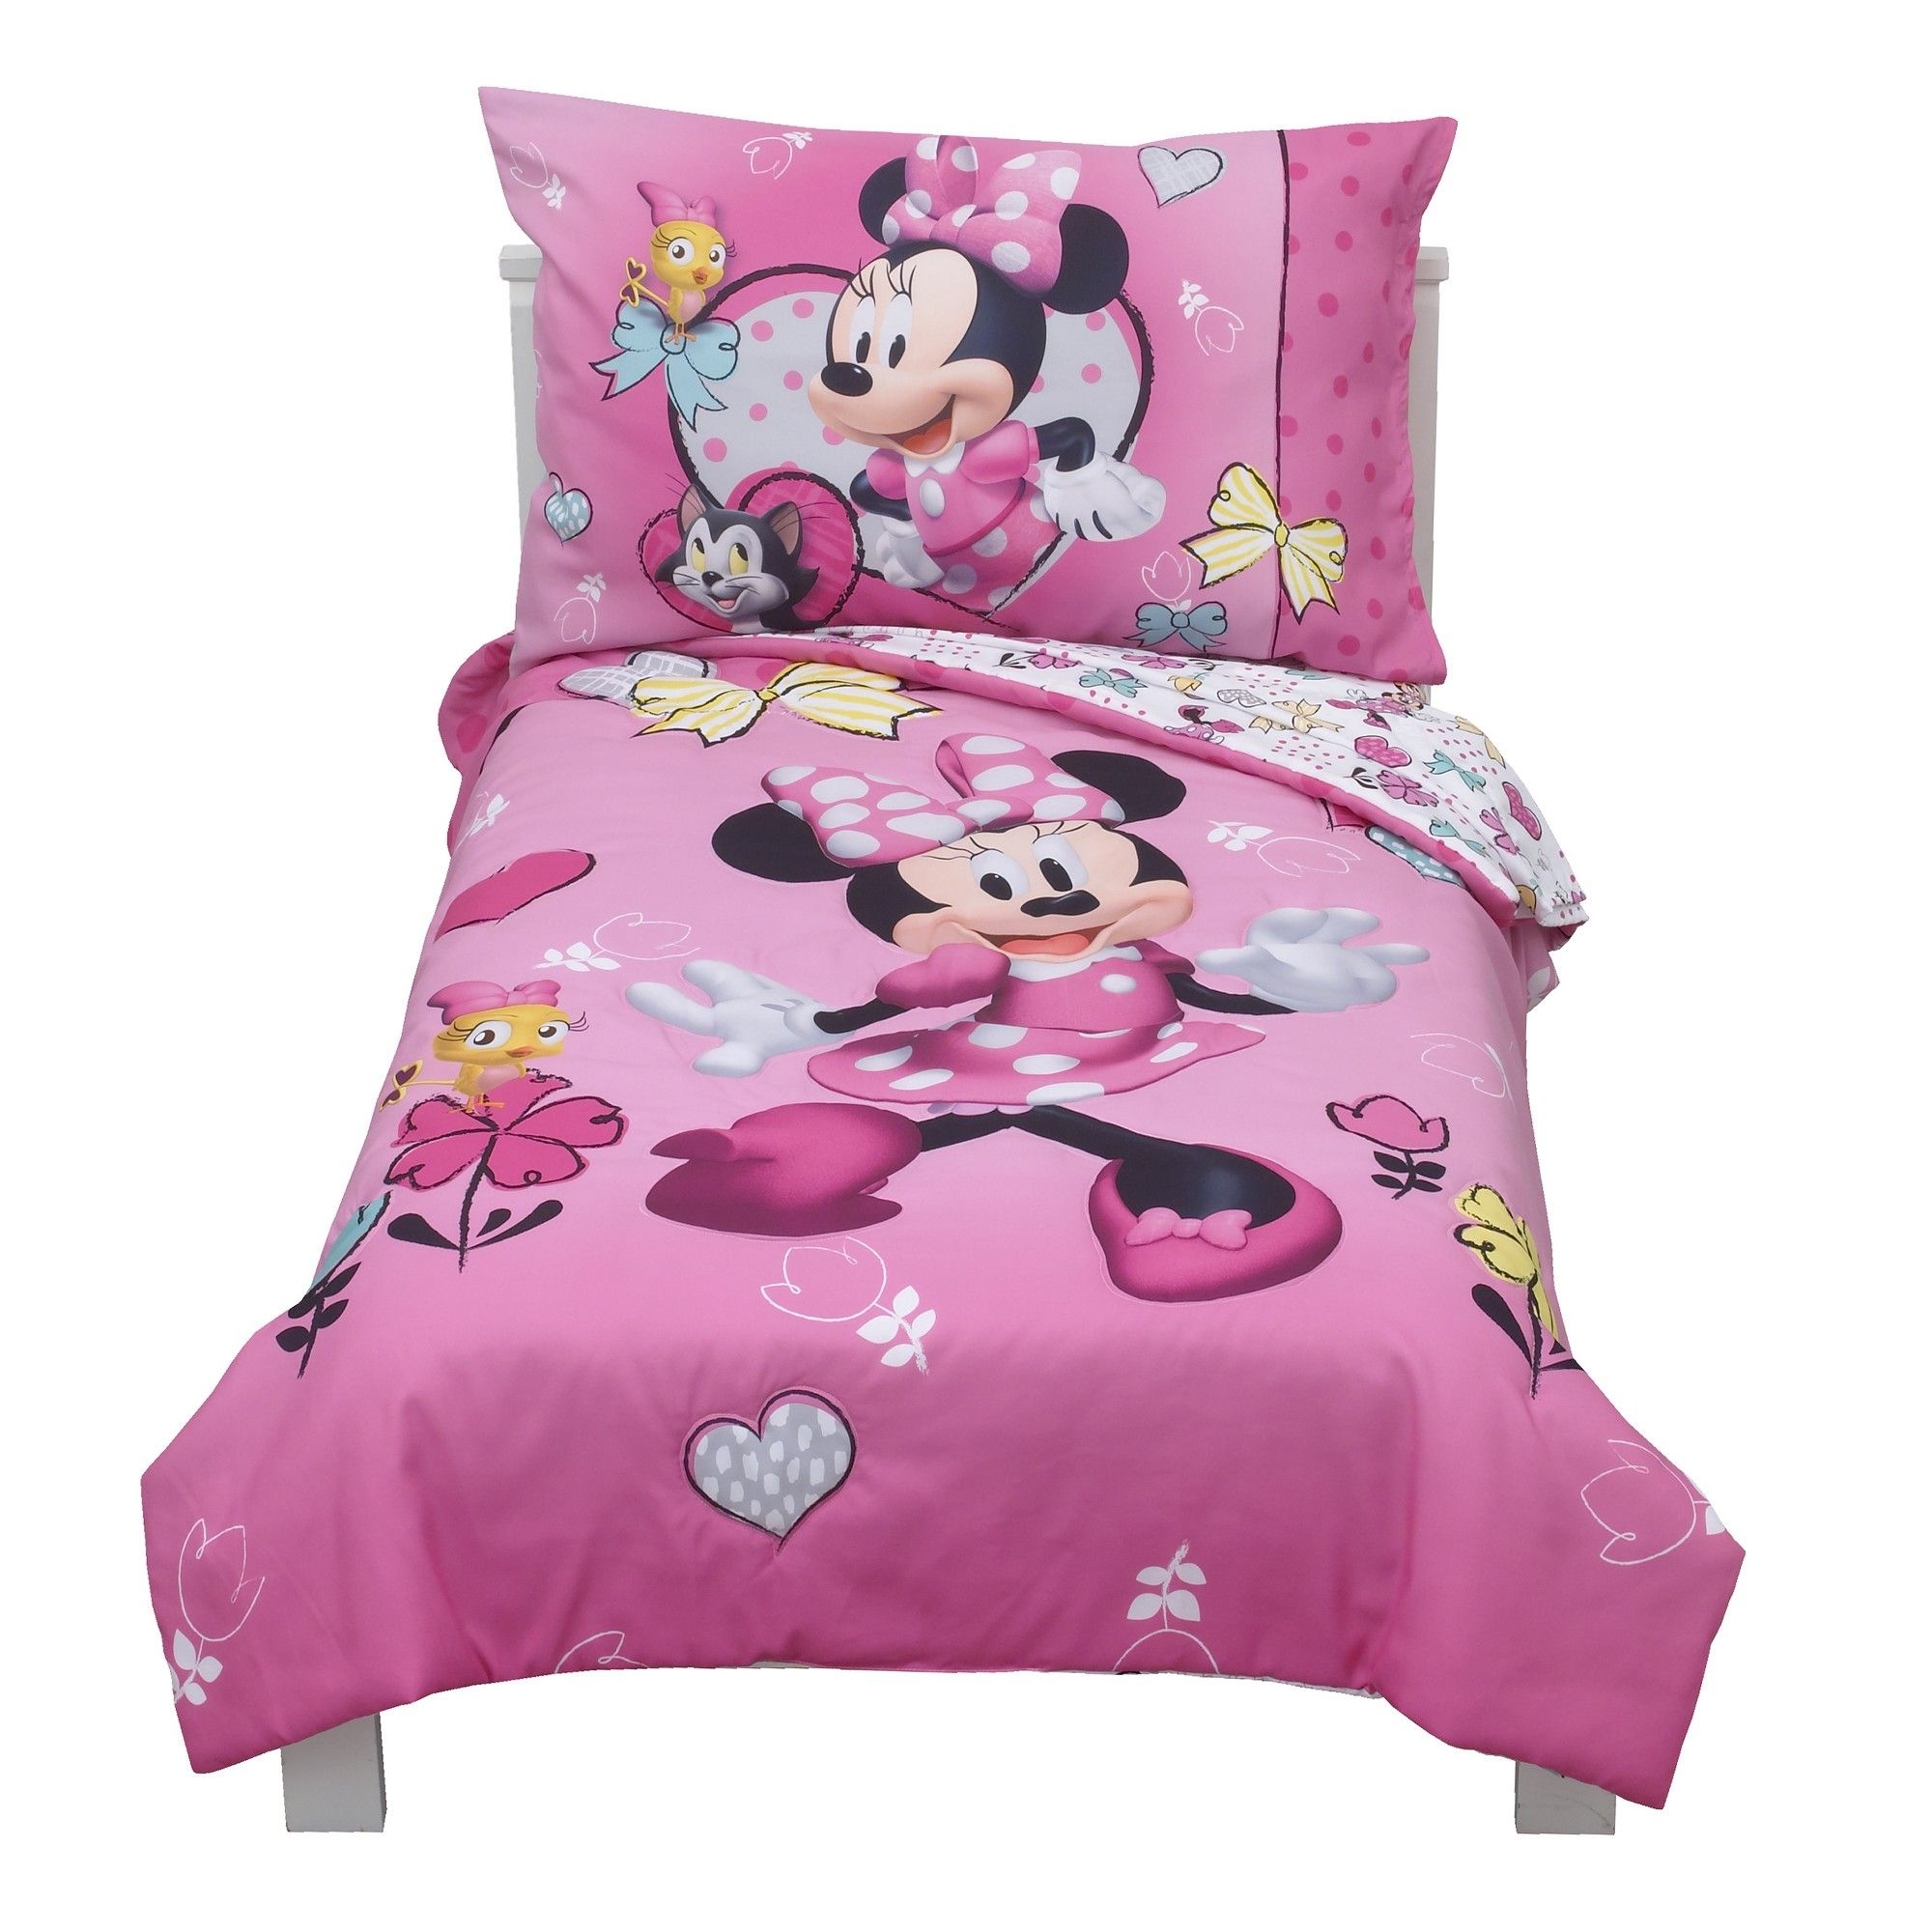 Mickey Mouse Friends Minnie Mouse Toddler 4pc Bedding Sets